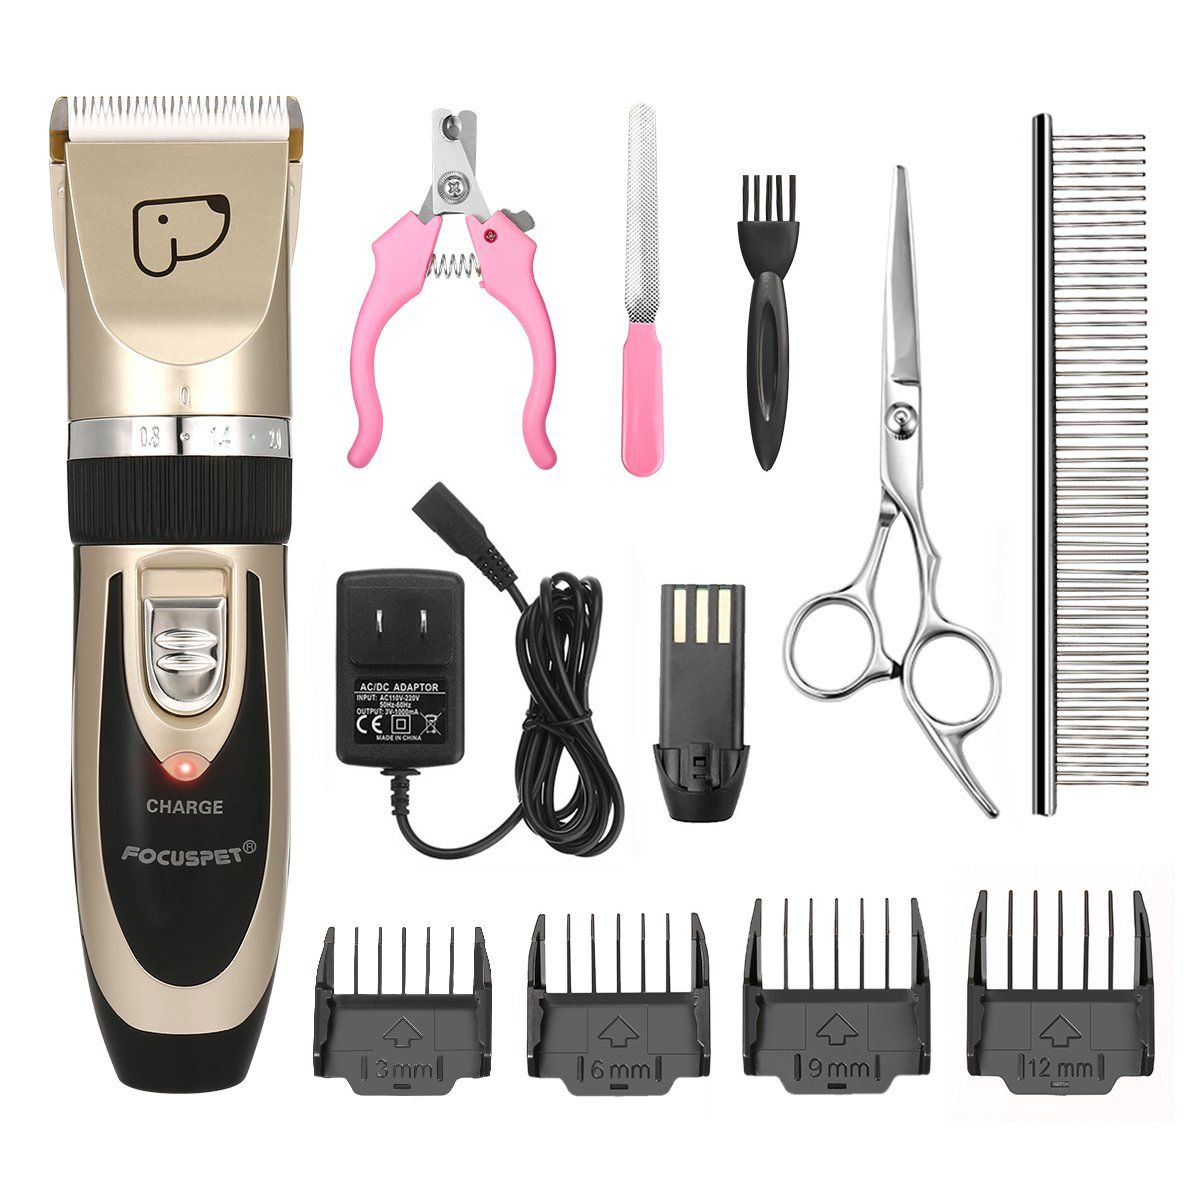 Dog Grooming Clippersfocuspet Cordless Quiet Pet Hair Clippers Rechargeable Dog Grooming Kit With Comb Guides S Dog Grooming Clippers Dog Grooming Grooming Kit